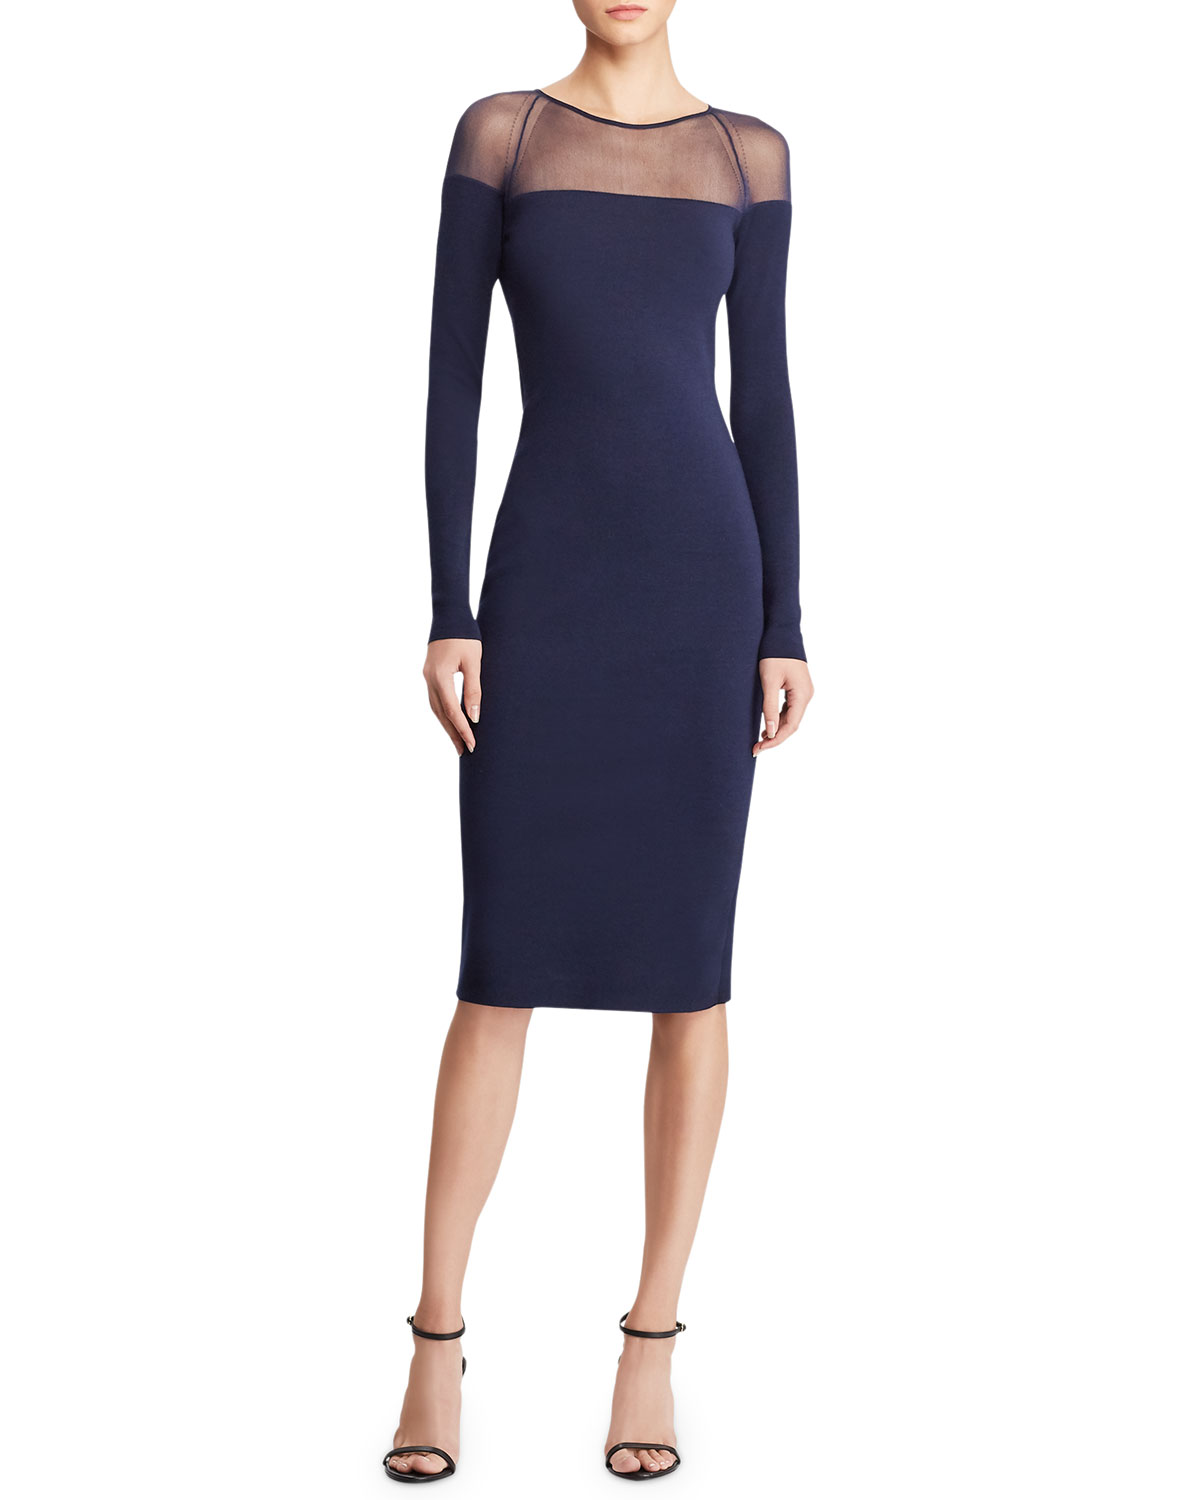 Long-Sleeve Illusion Body-Con Dress in Navy